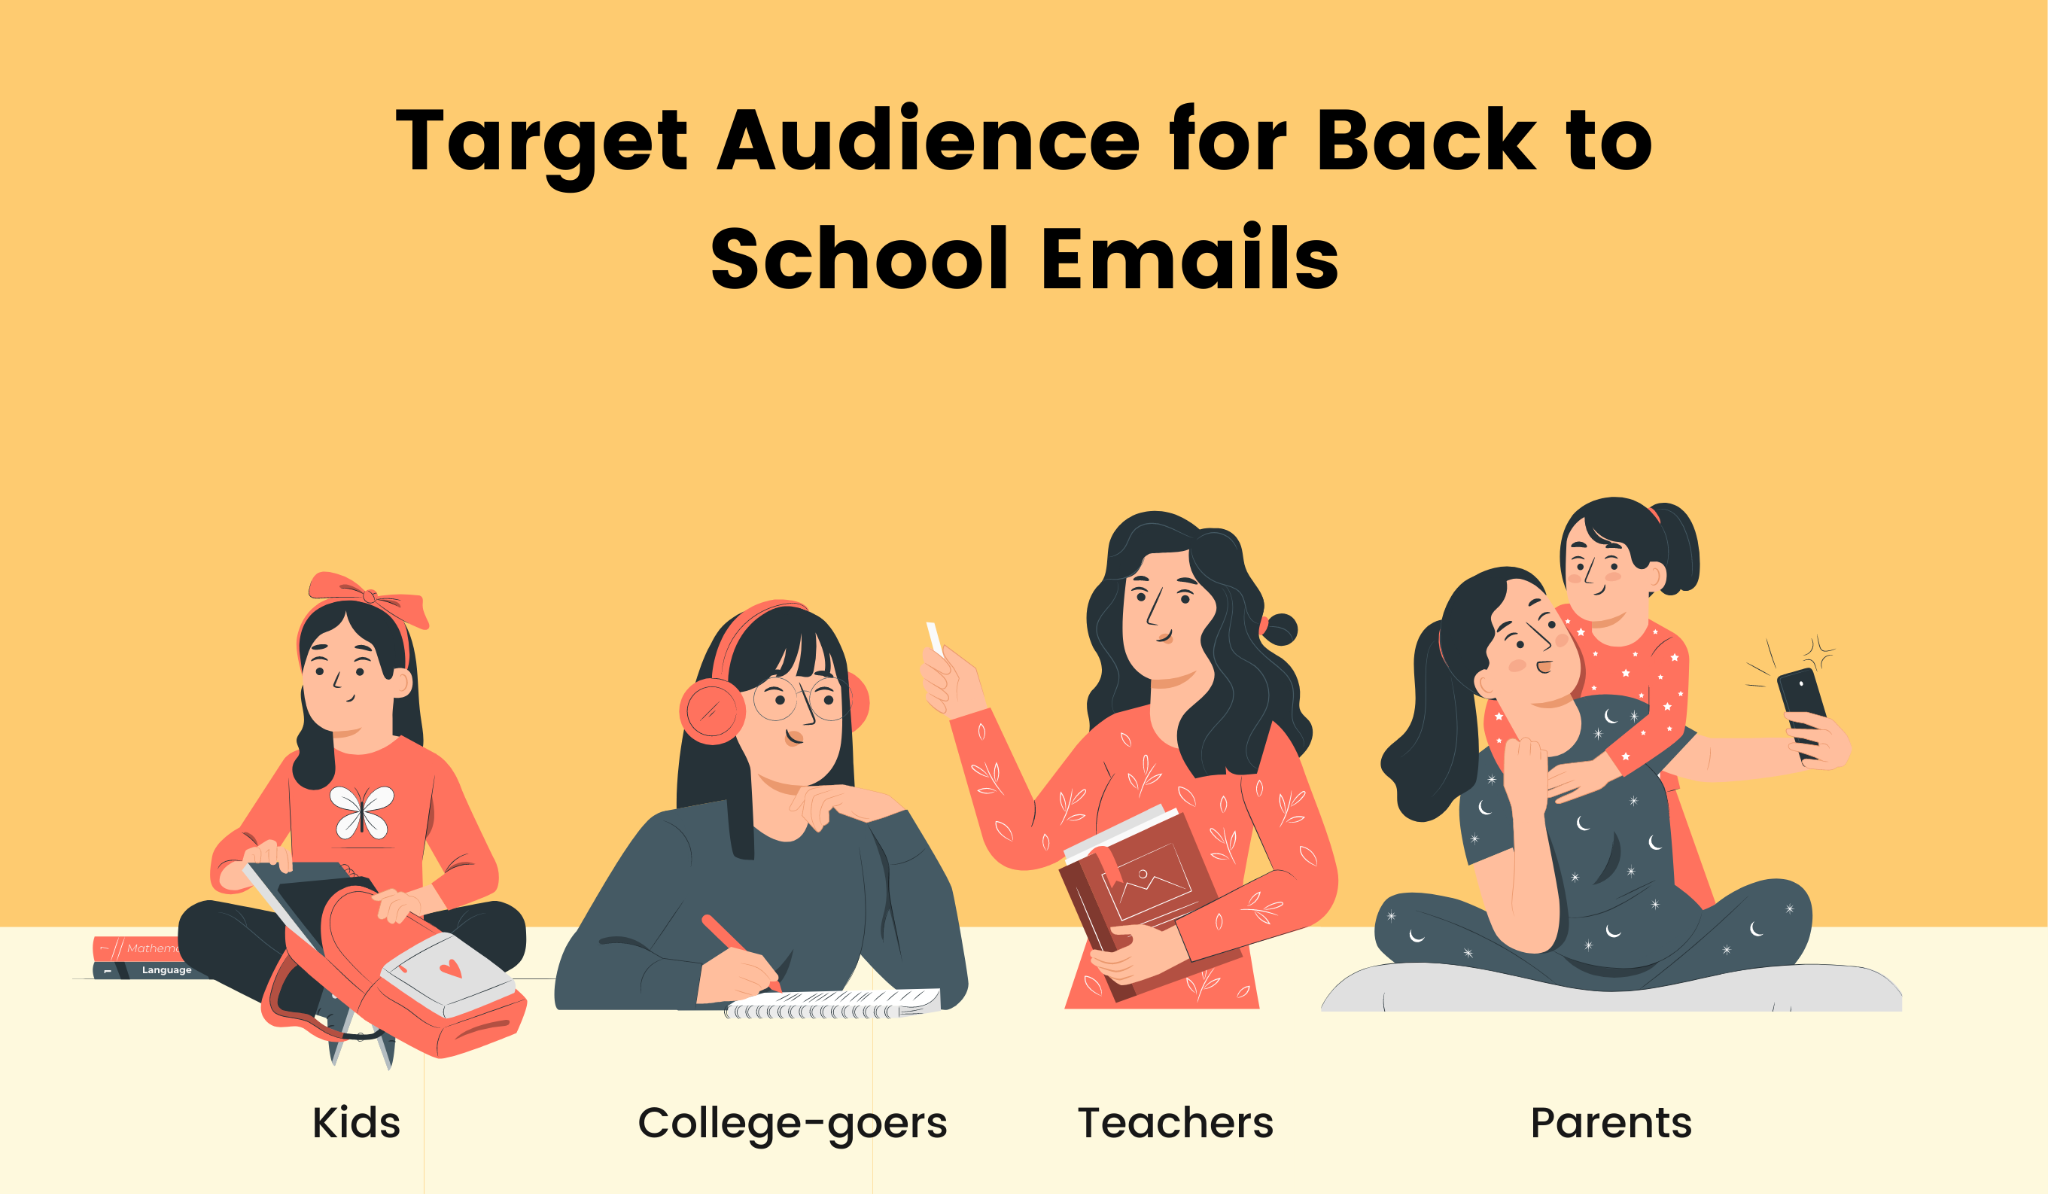 4 segments to send back to school emails